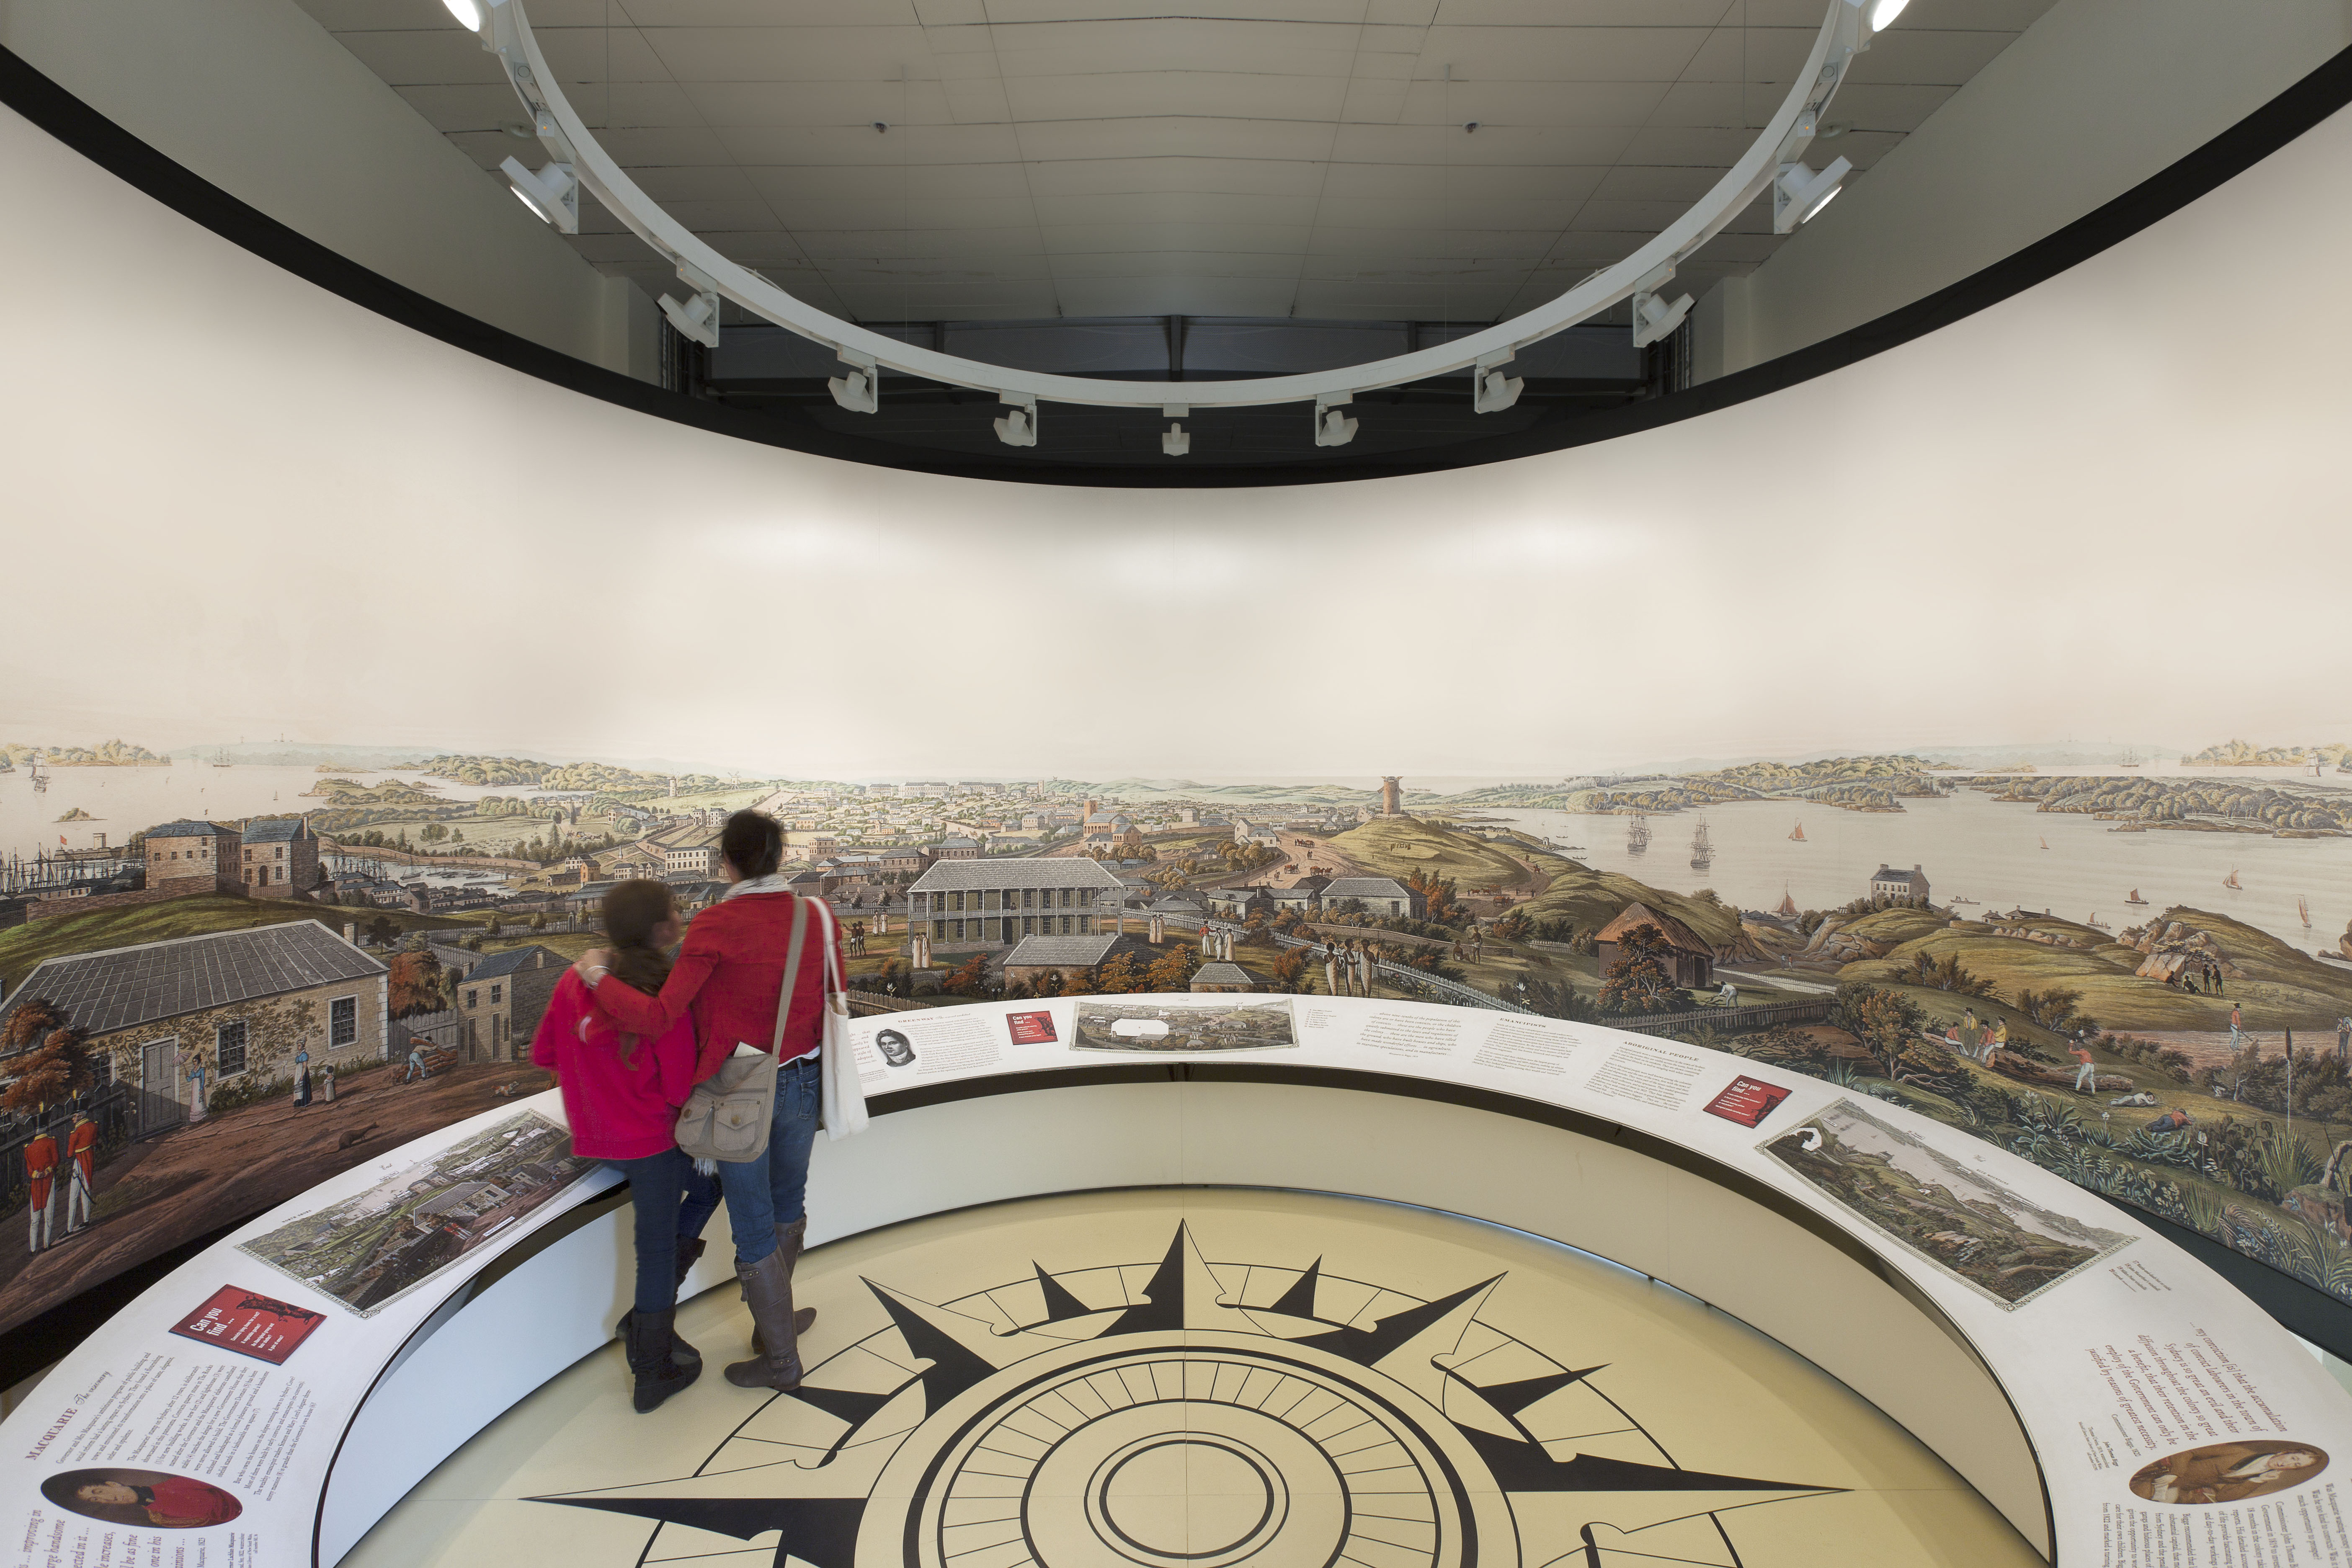 Two visitors standing in front of circular panorama installation in Convict Sydney exhibition. On the floor is a large compass graphic.